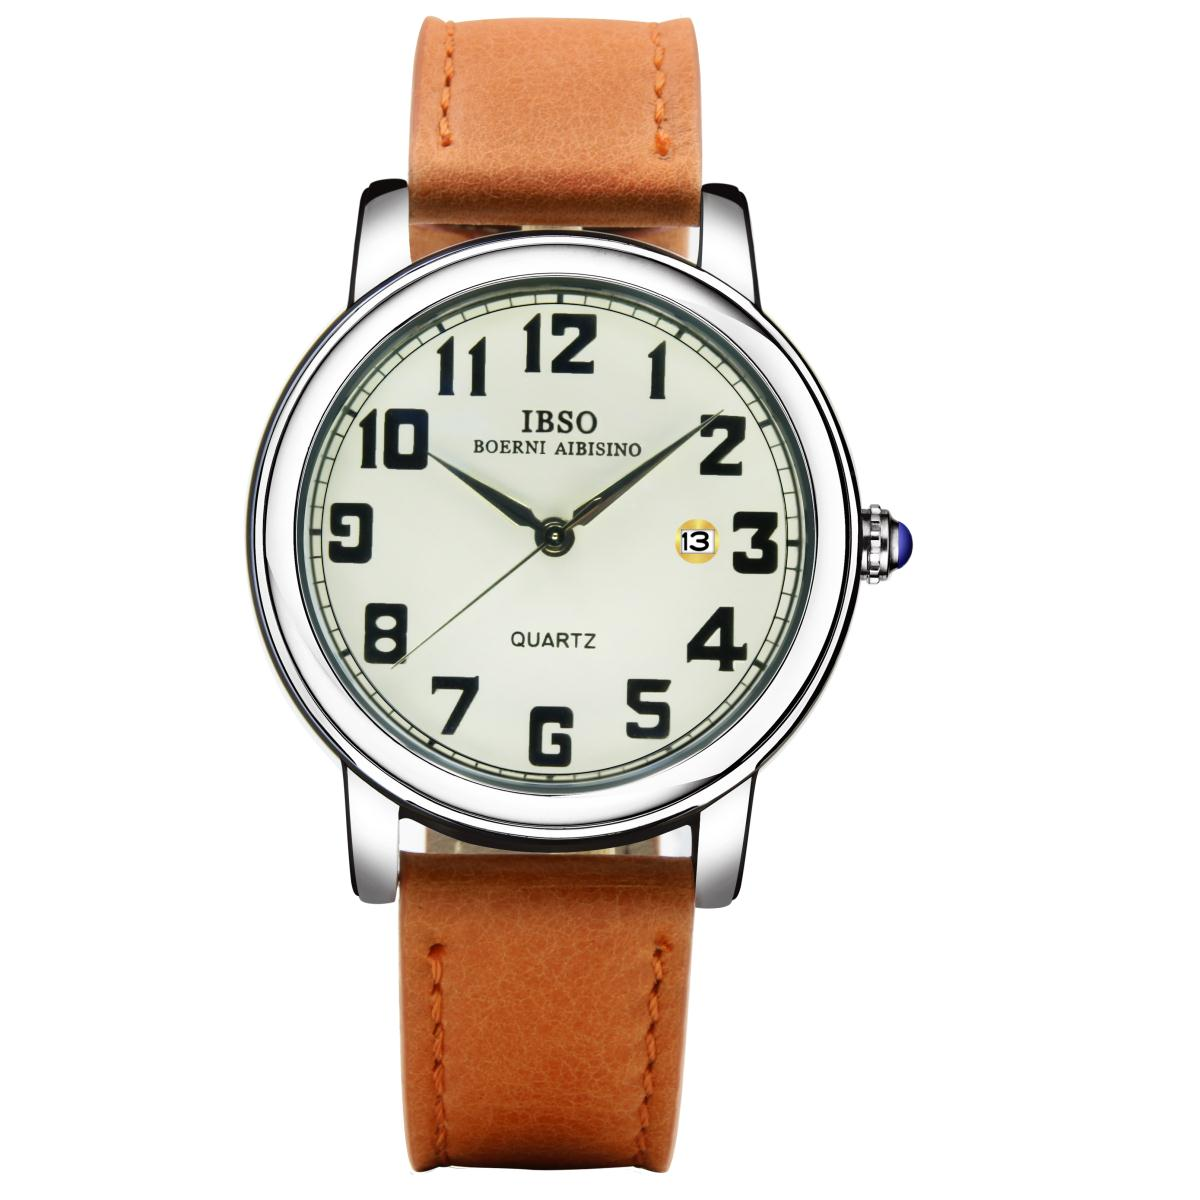 IBSO Good Quality Quartz Analog Watches for Men Genuine Leather Strap Quartz Wrist Watch YYP3969